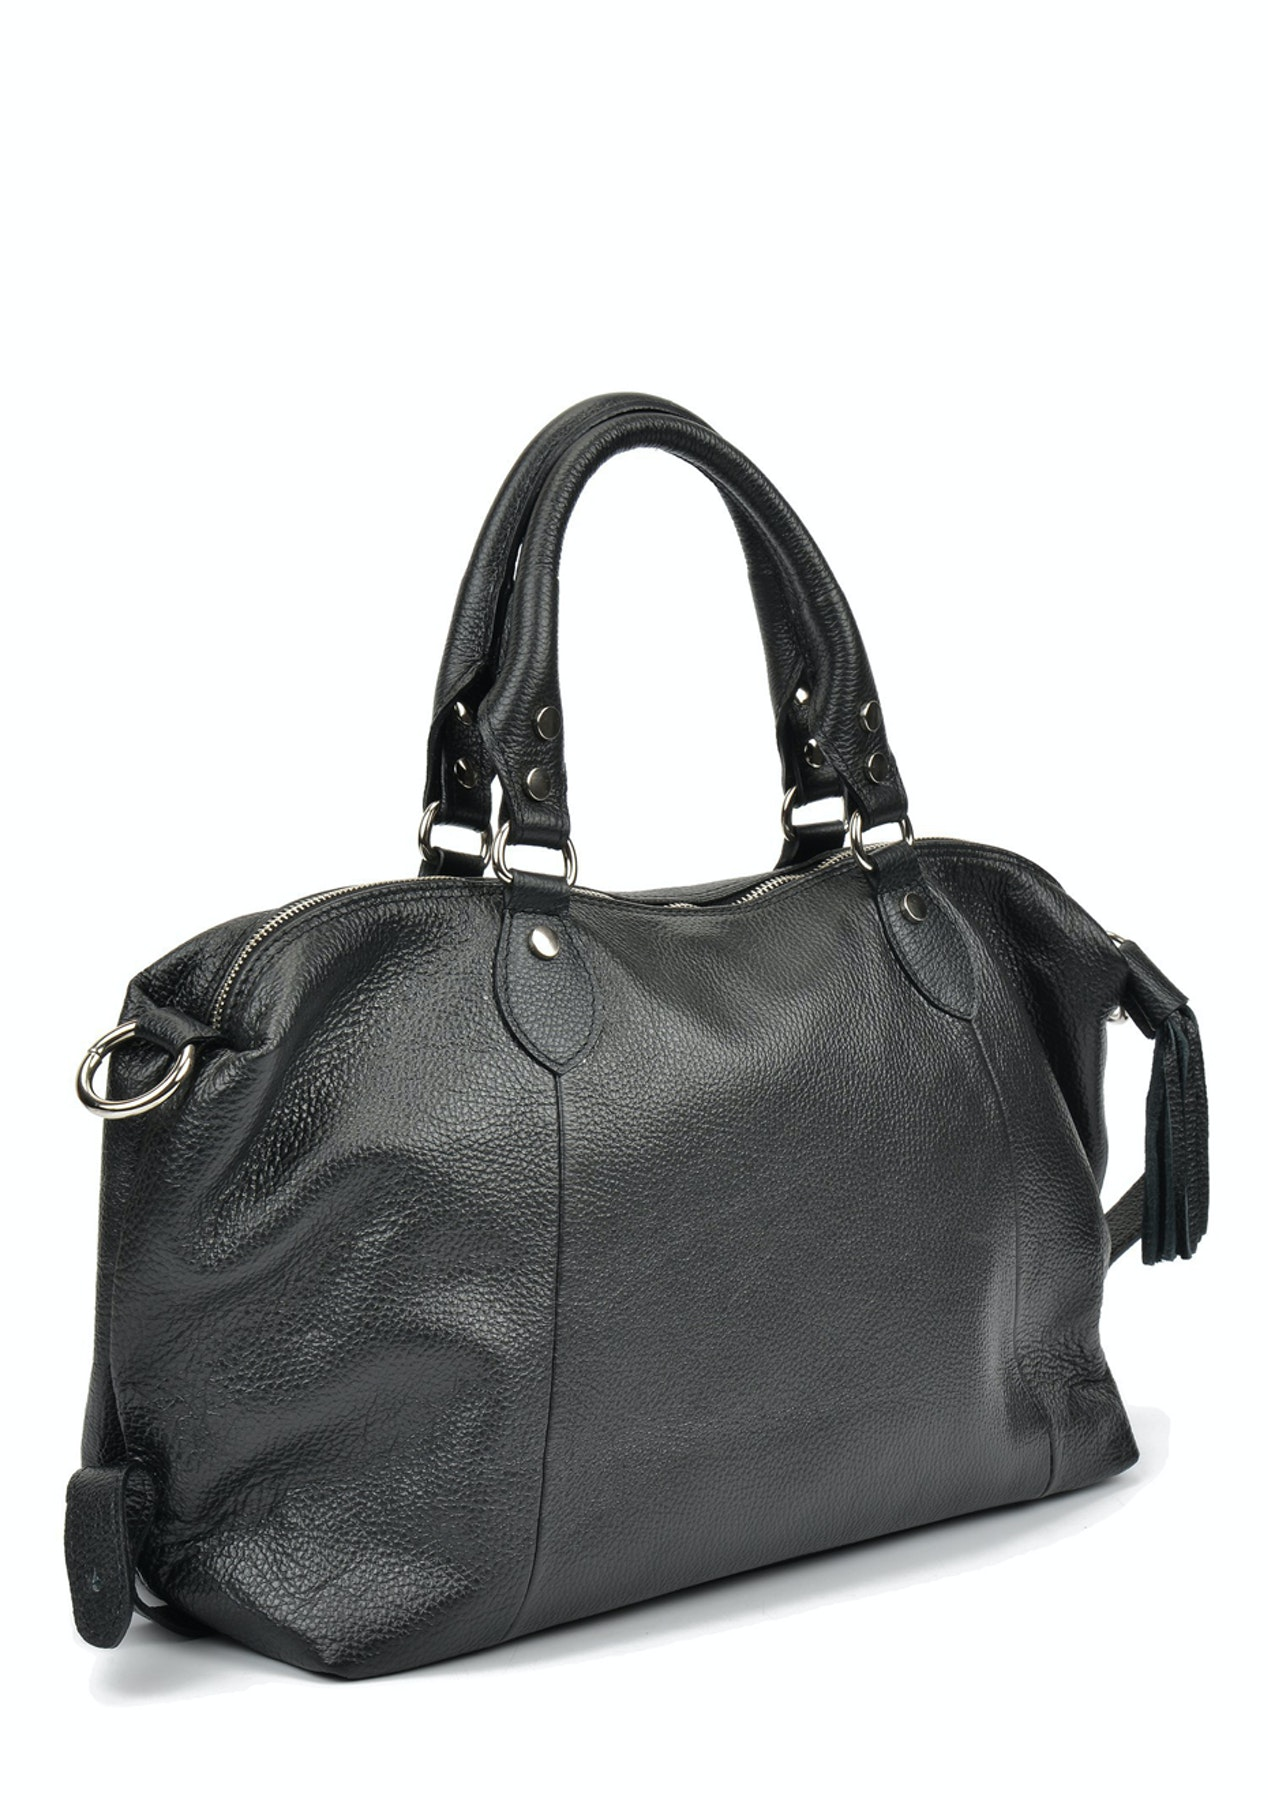 Mangotti Bags - Genuine Leather Top Handle Bag - Nero - Luxe Gifts for Her  - Onceit f300c48c2de95